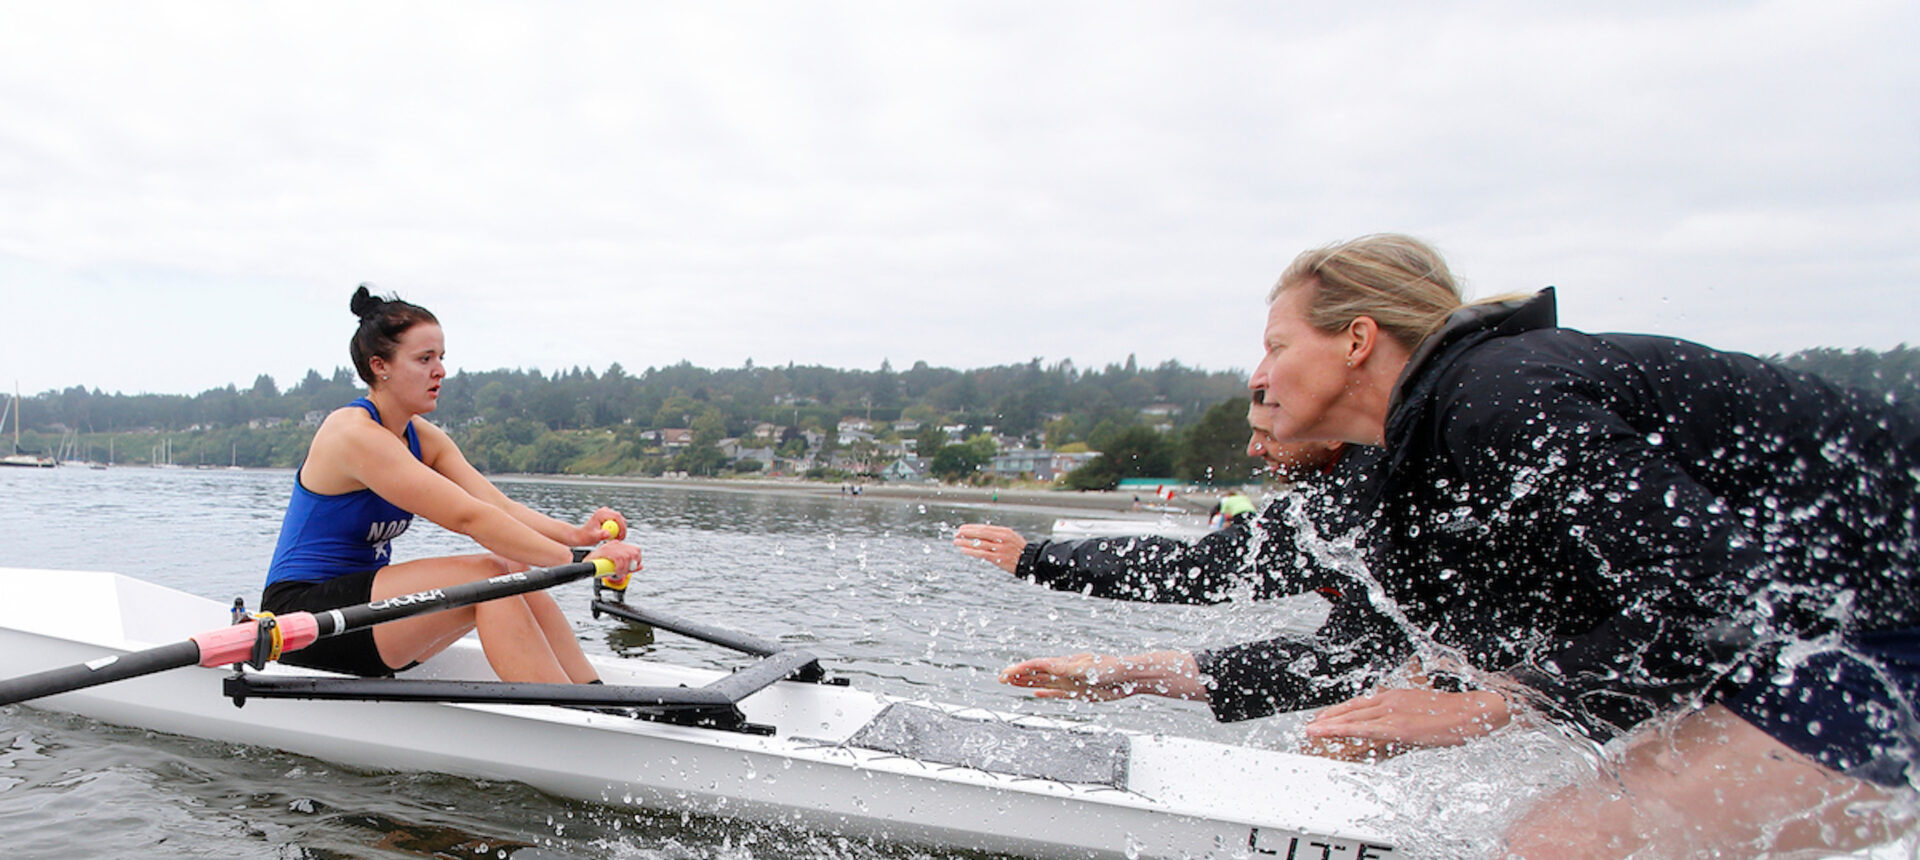 Canadians ready to sprint and row to World Beach Sprint Finals finish line